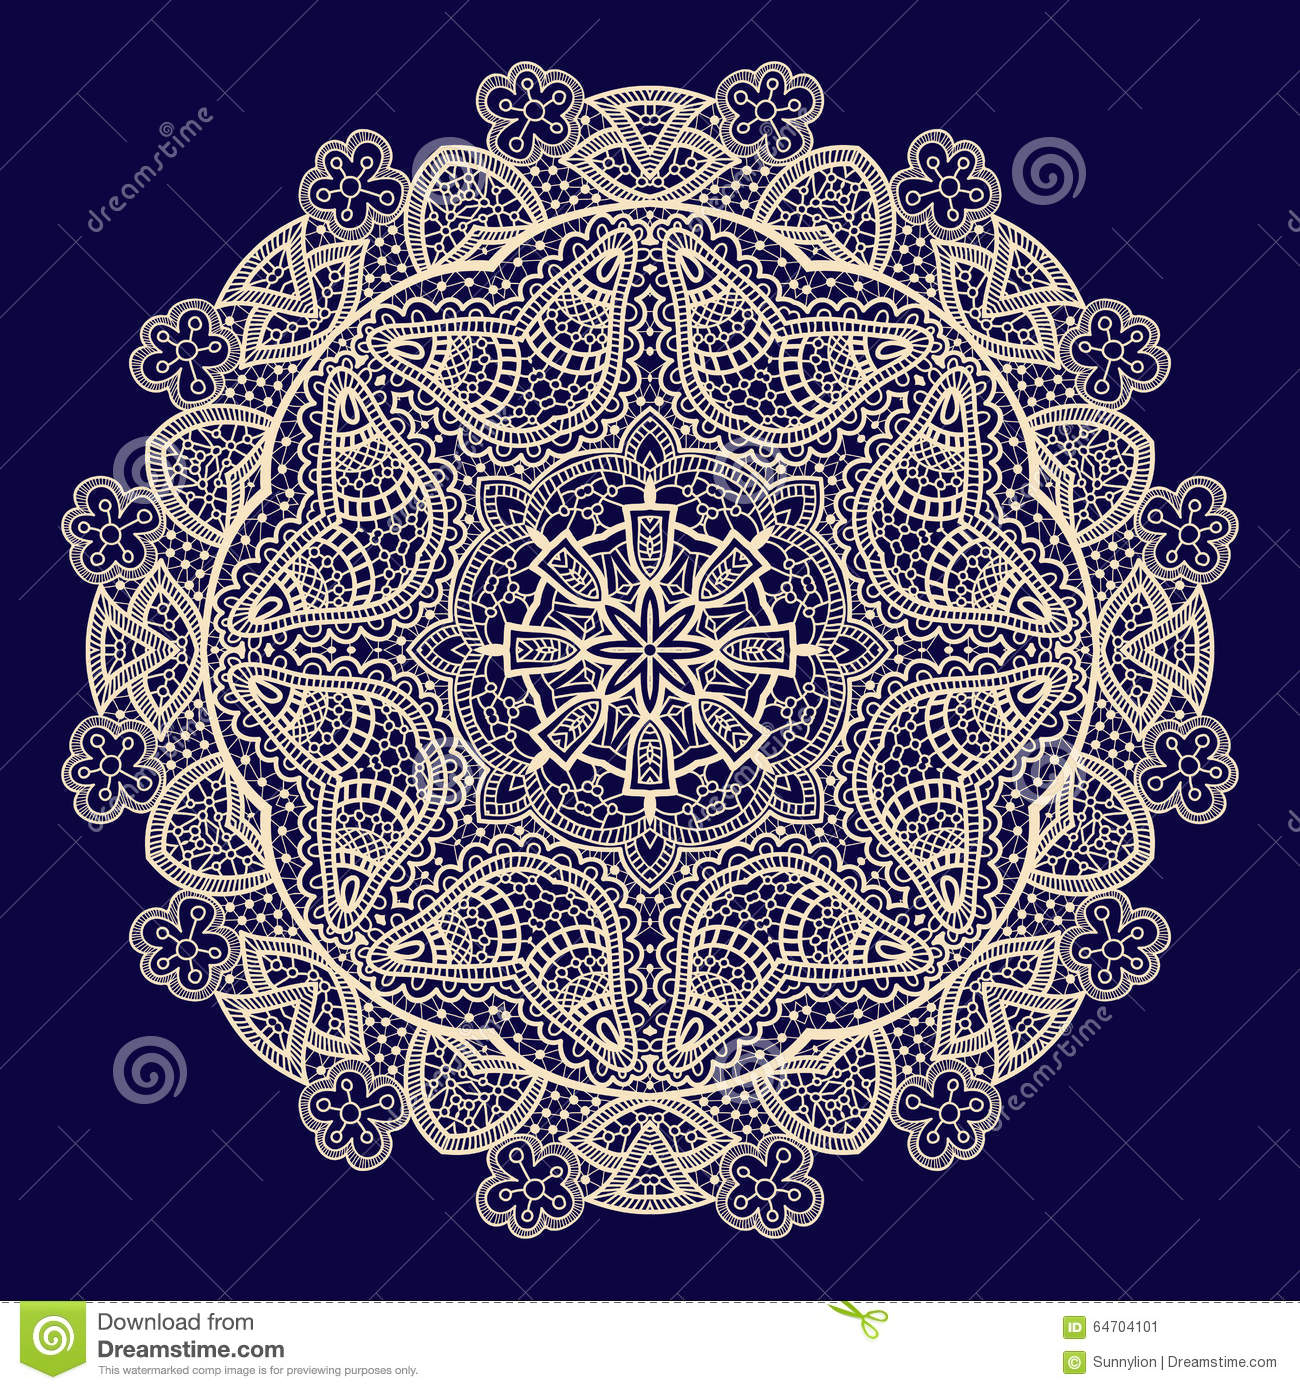 Vector Vintage Handmade Knitted Doily, Lace Pattern Stock Vector ...